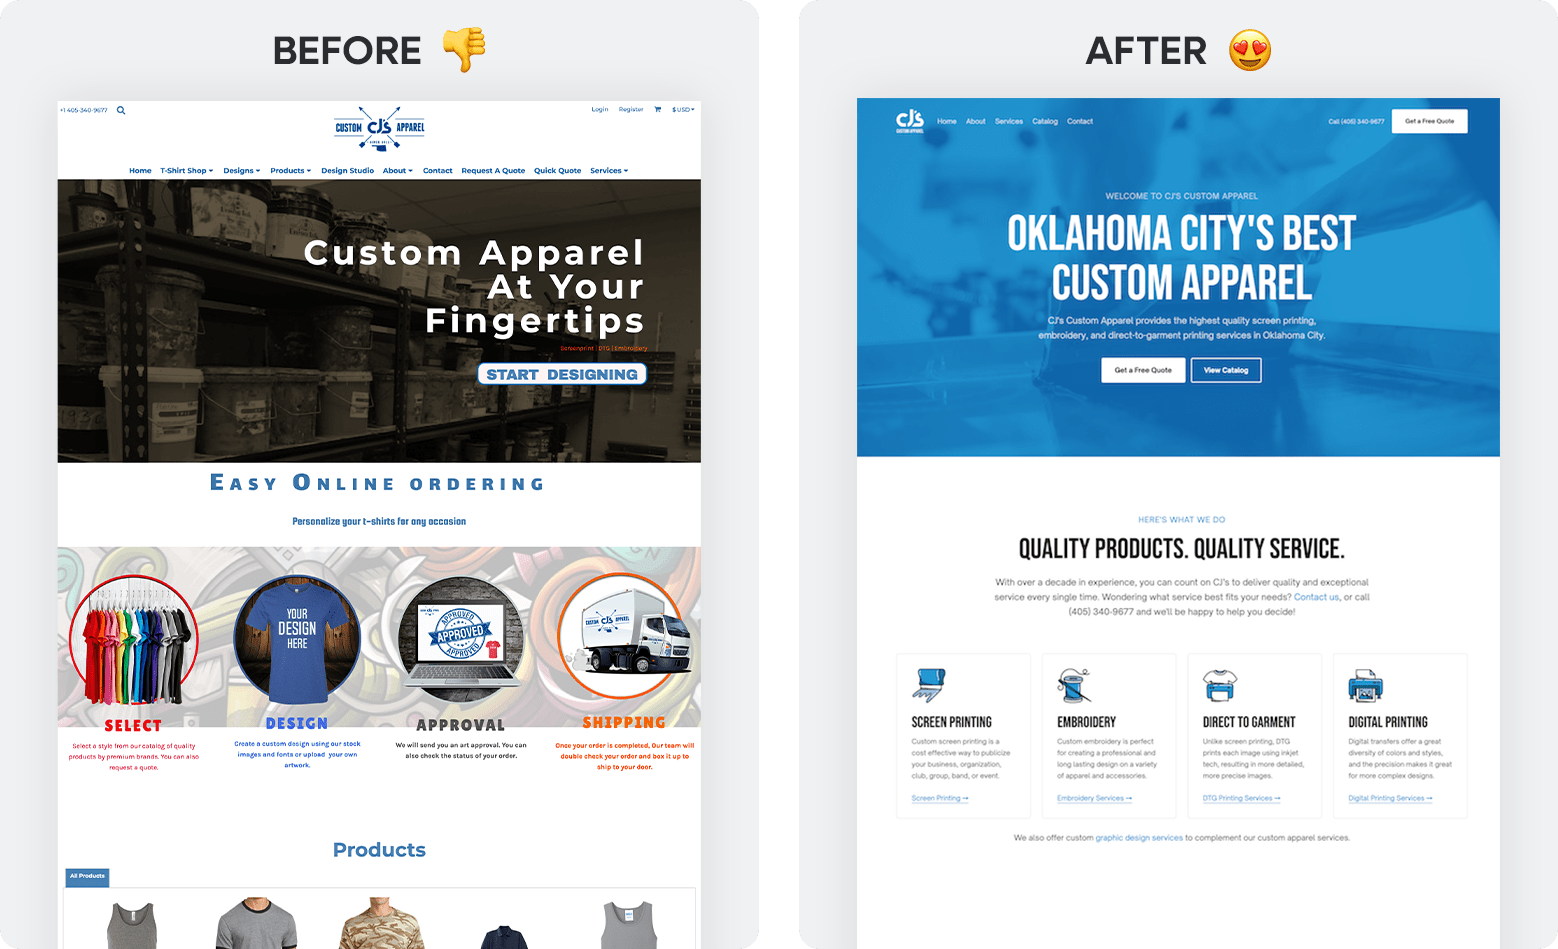 CJ's Custom Apparel Website Before and After a Carbon Creative Website Redesign with Astonishing Results